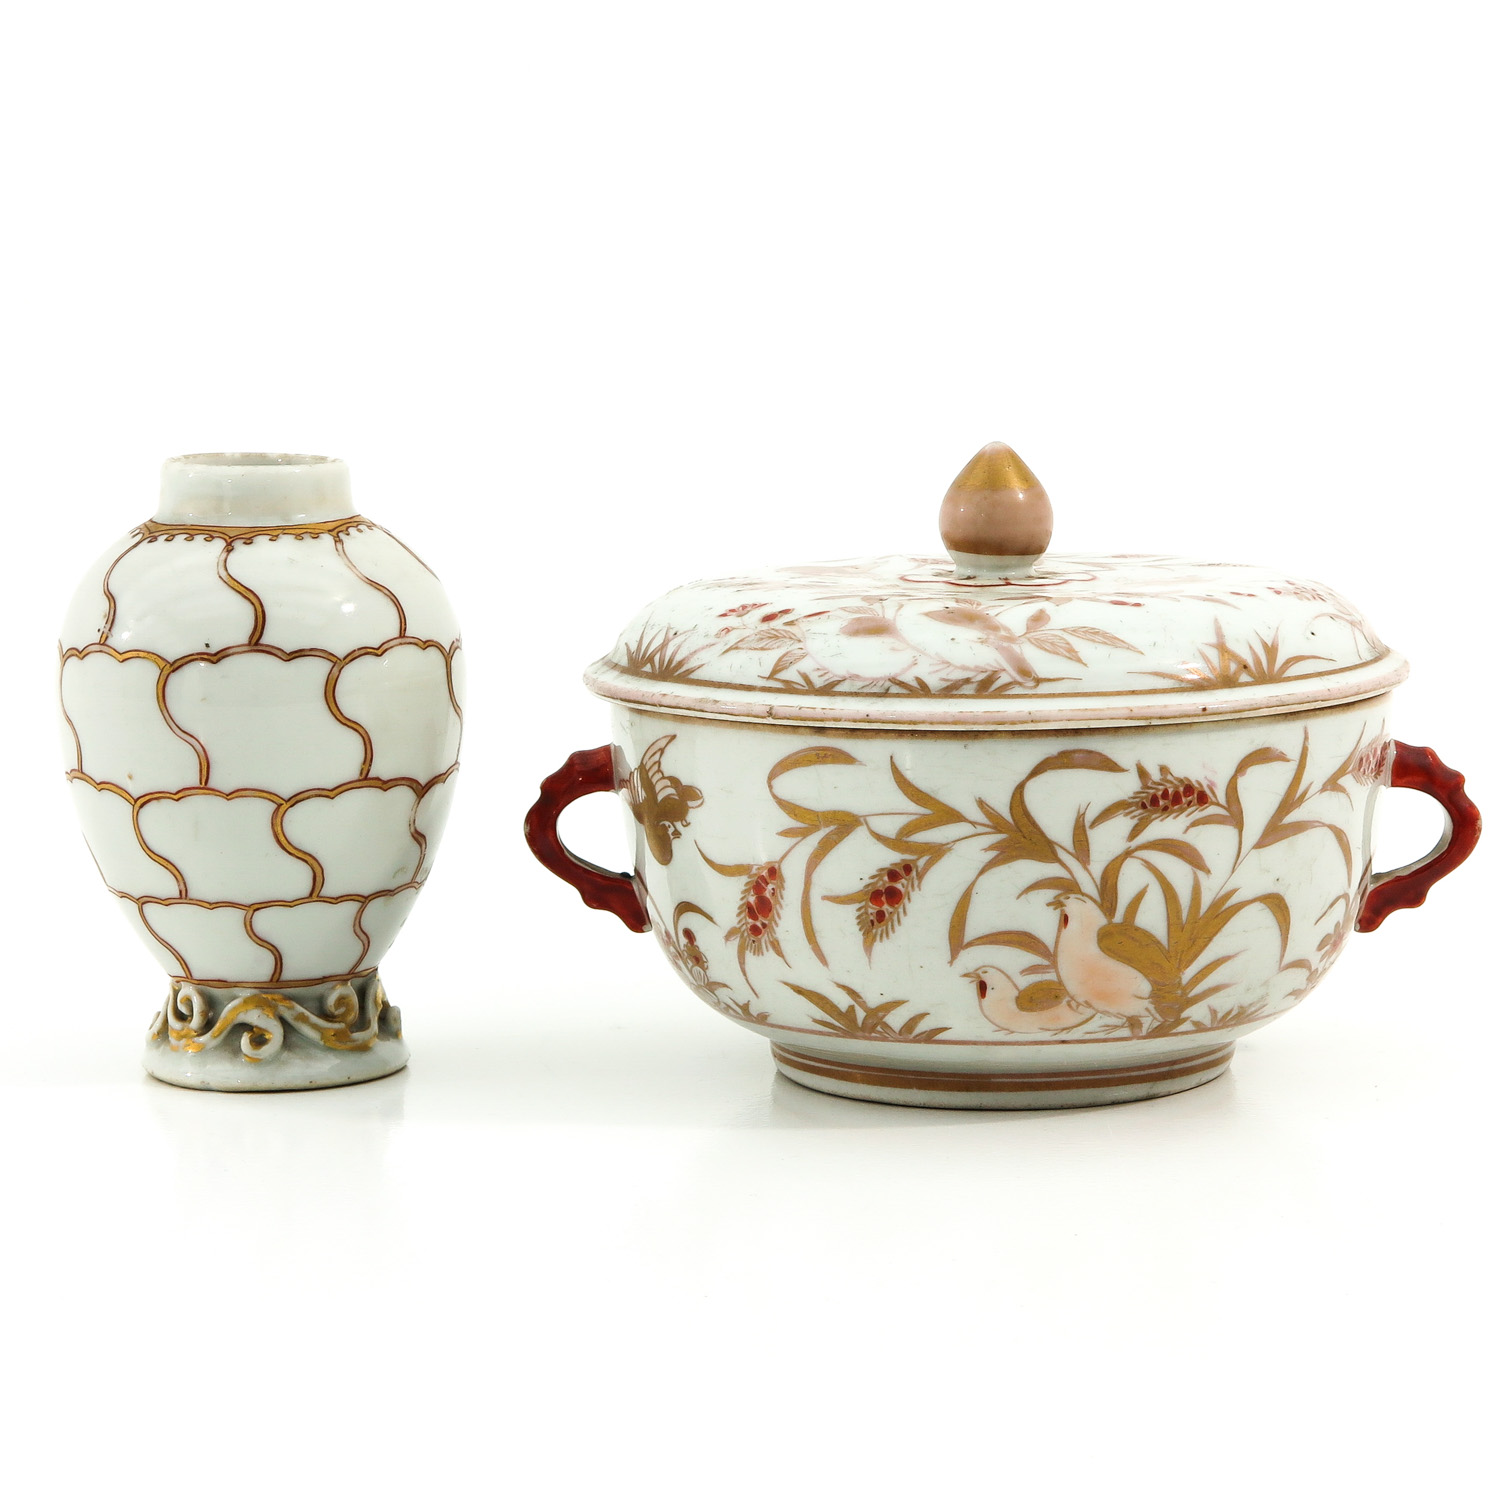 A Tea Box and Covered Dish - Image 3 of 9